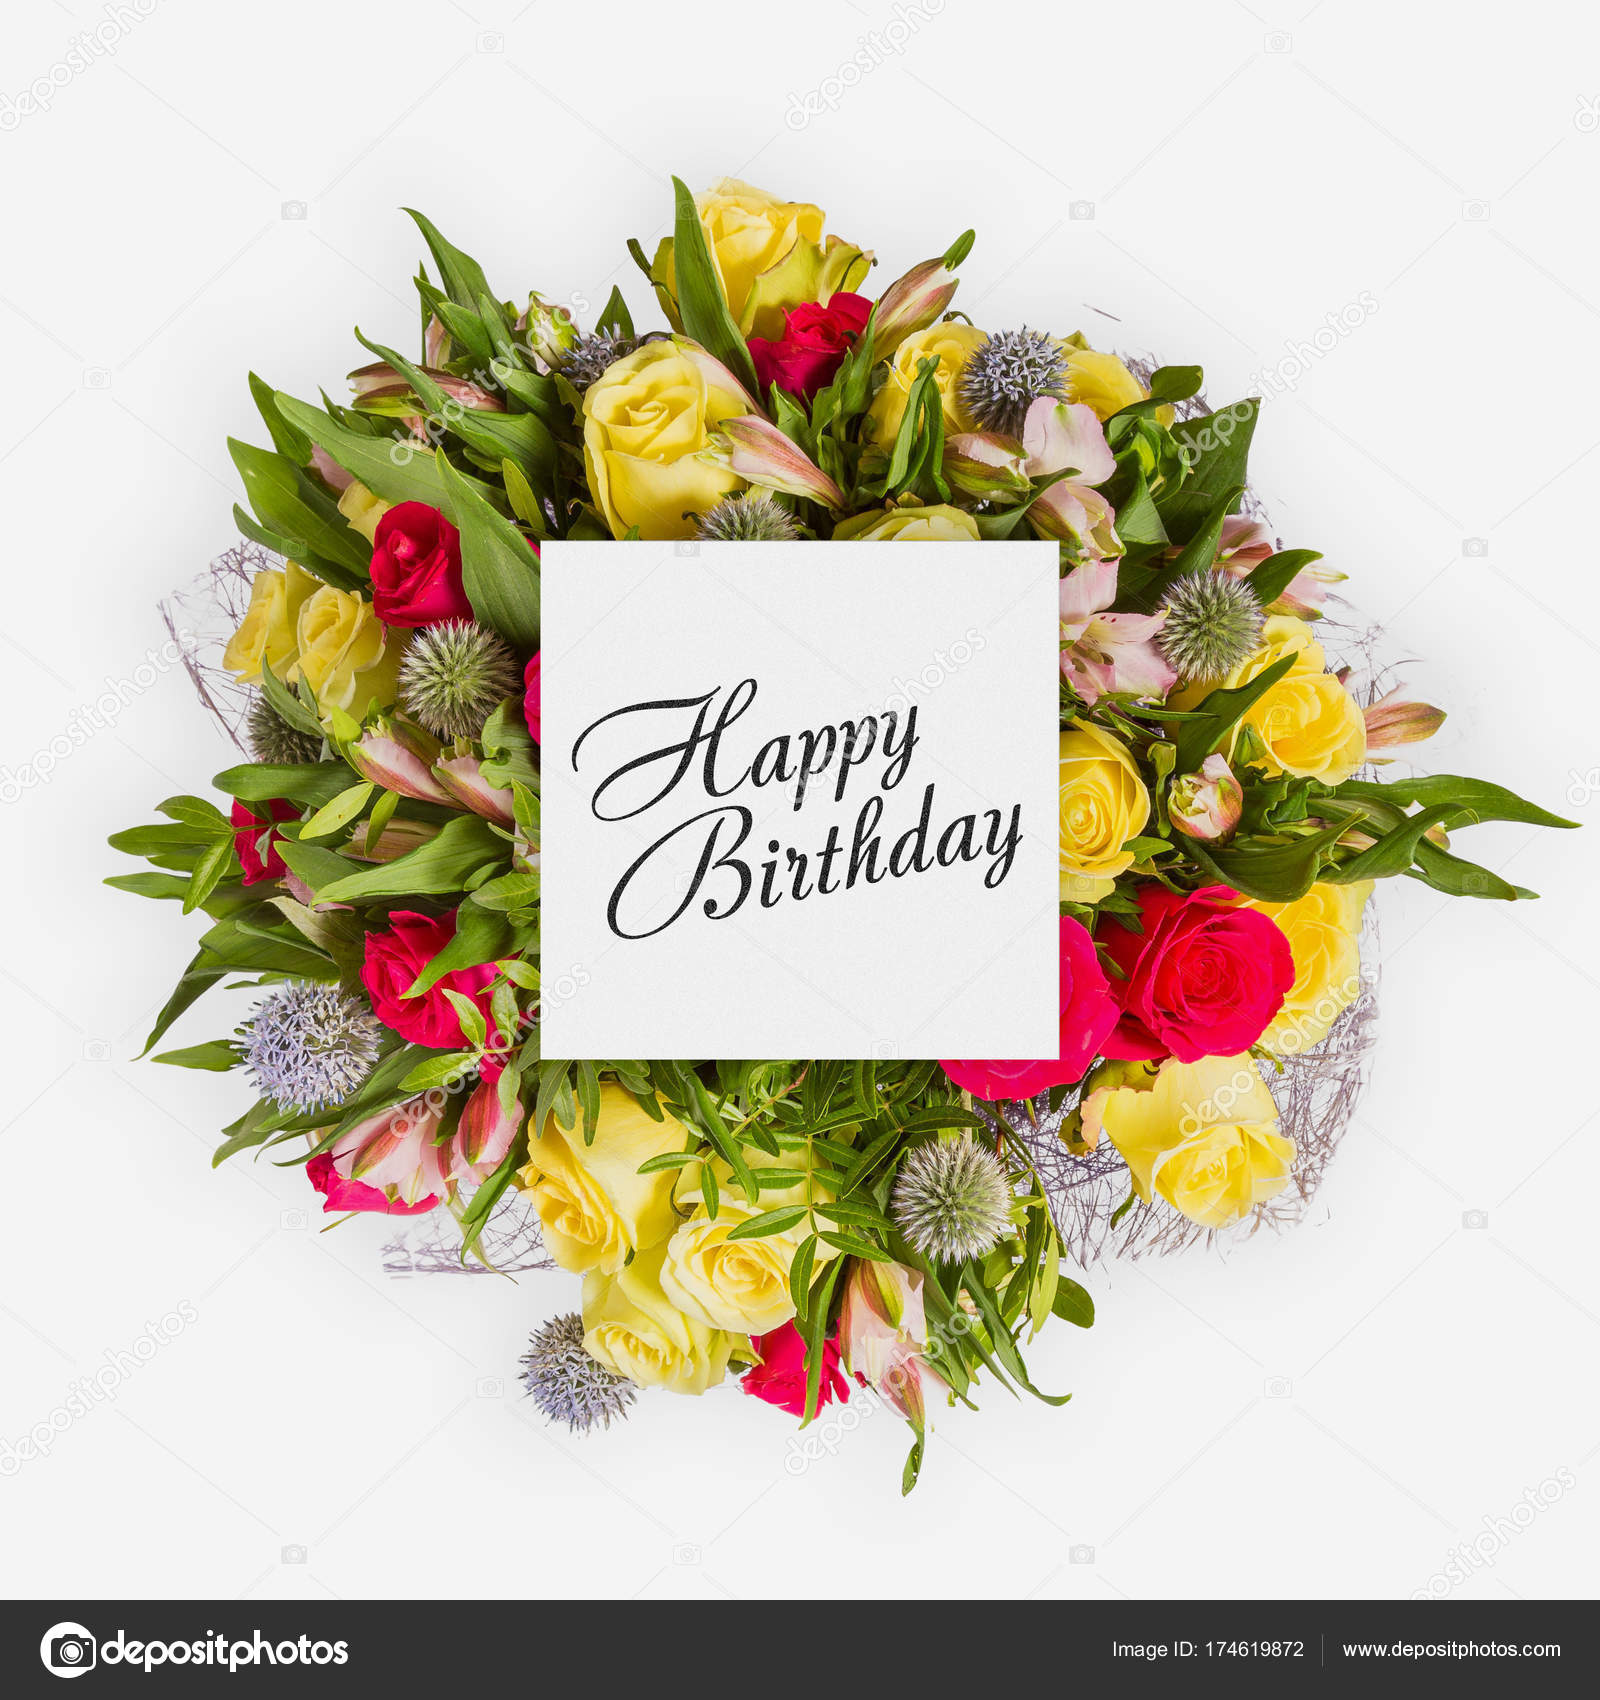 Happy birthday card with flowers flat lay stock photo gilmanshin happy birthday card with flowers flat lay stock photo izmirmasajfo Image collections